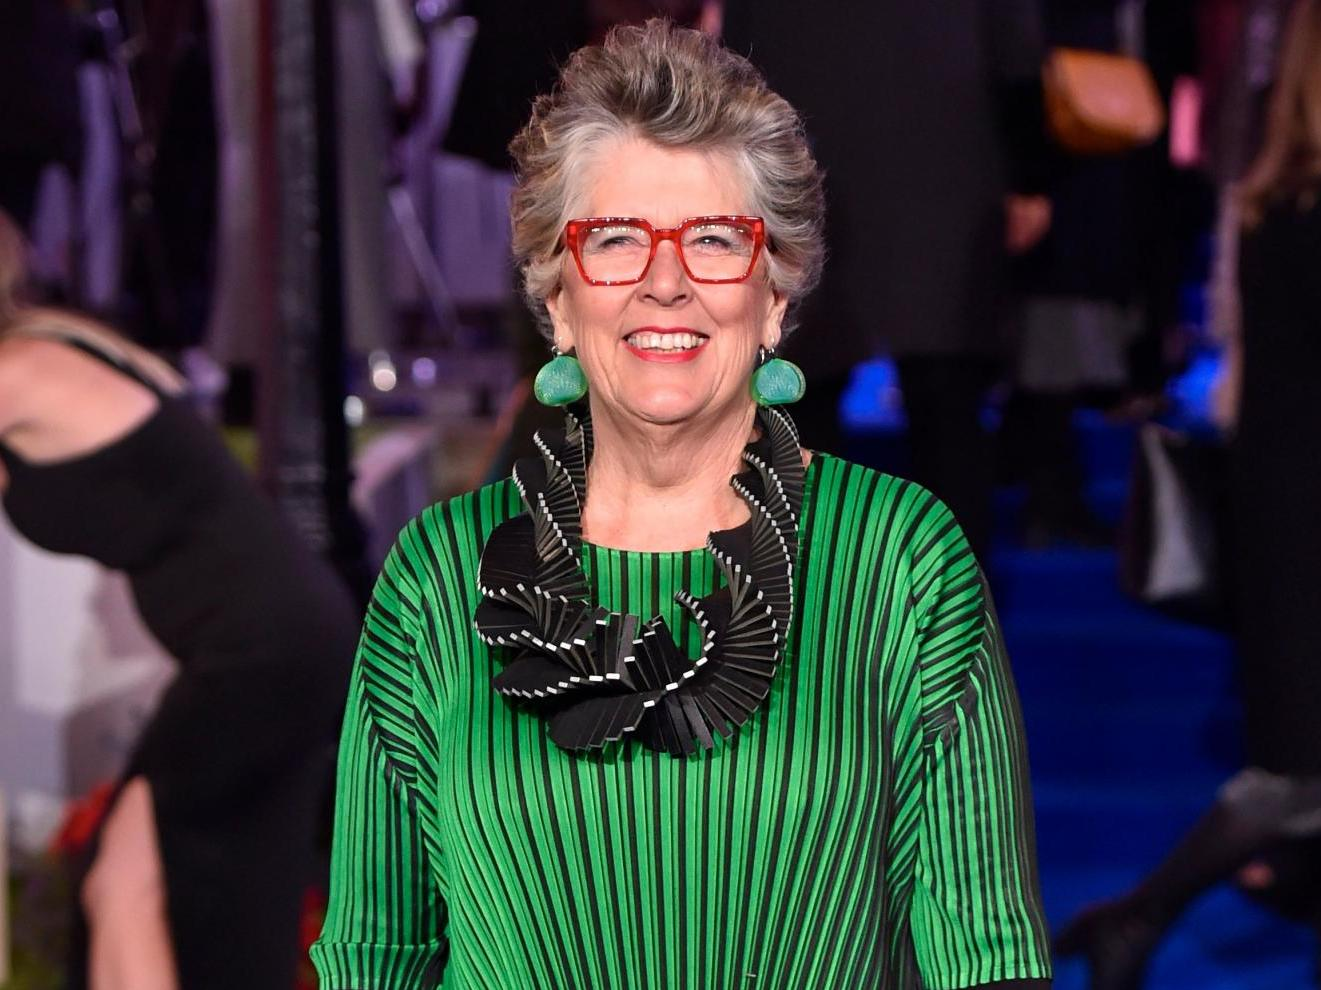 Bake Off judge Prue Leith opens up about working for sexist head chef at Savoy 1